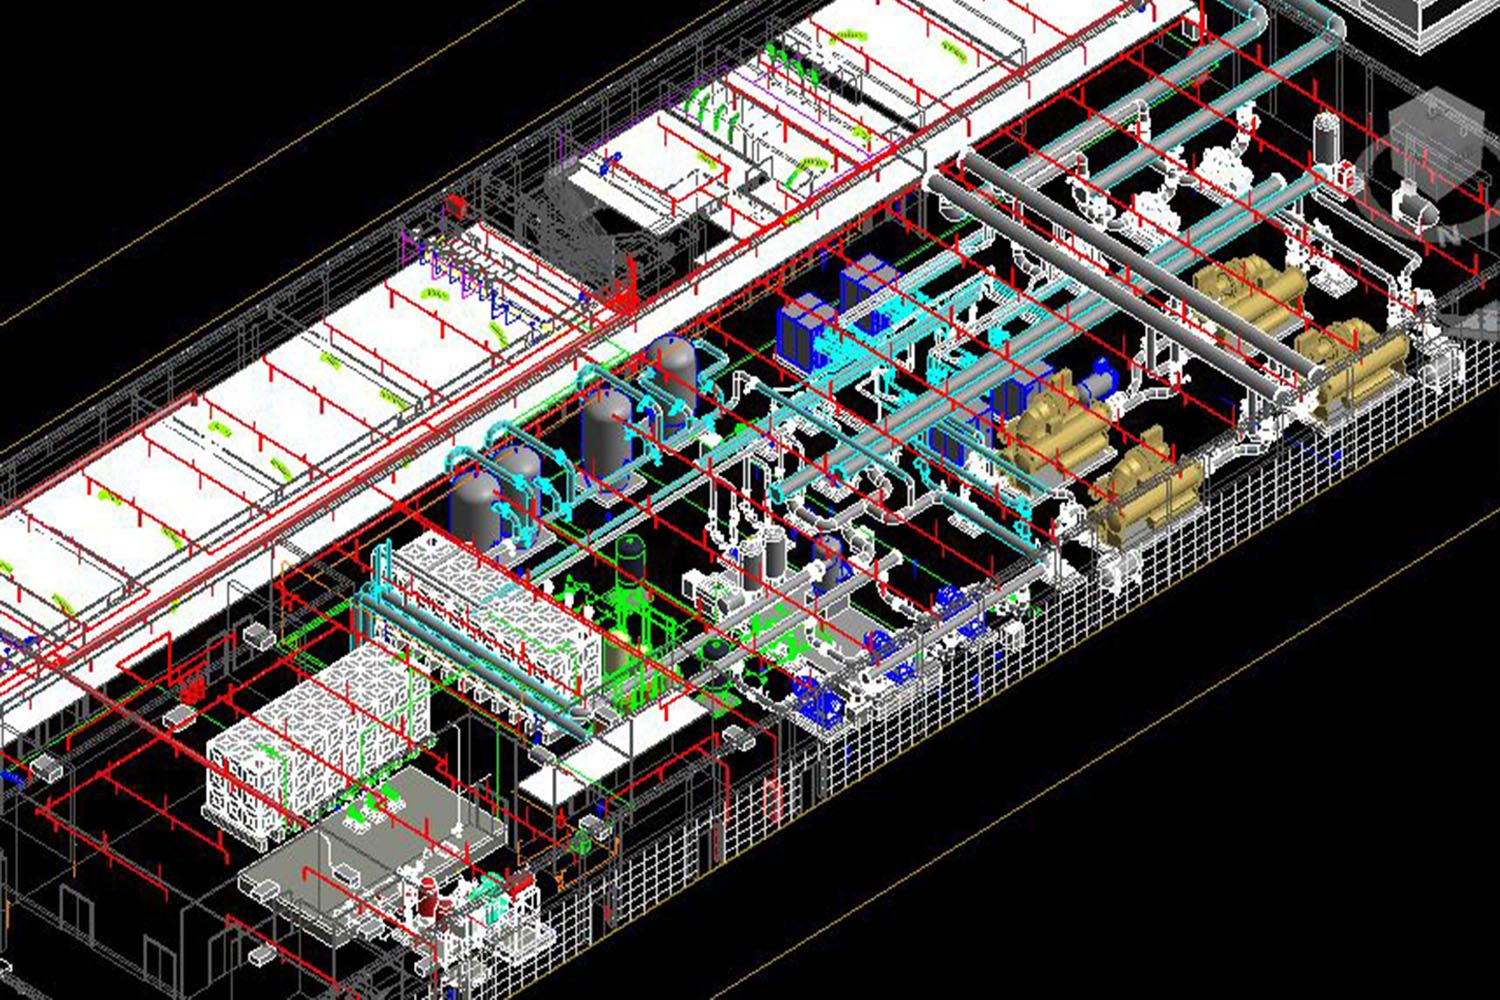 cad outsourcing architecture structural mep civil bim hvac plumbing shop drawing fabrication rebar detailing [ 1500 x 1000 Pixel ]